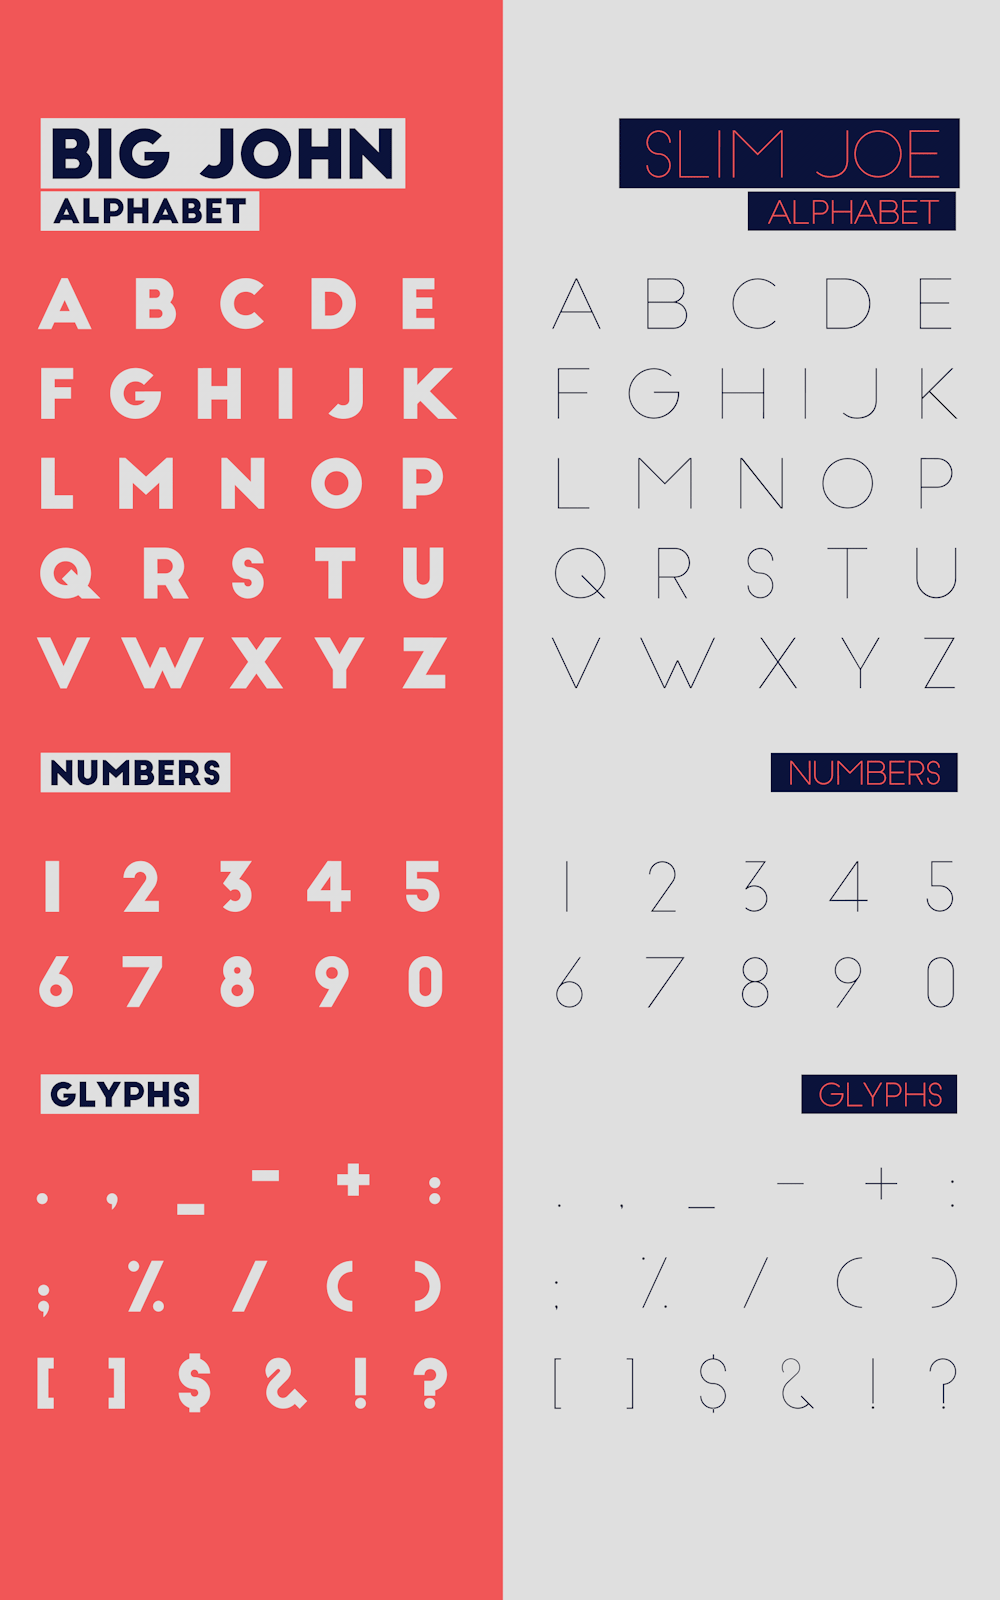 Big John & Slim Joe – FREE FONTS Download